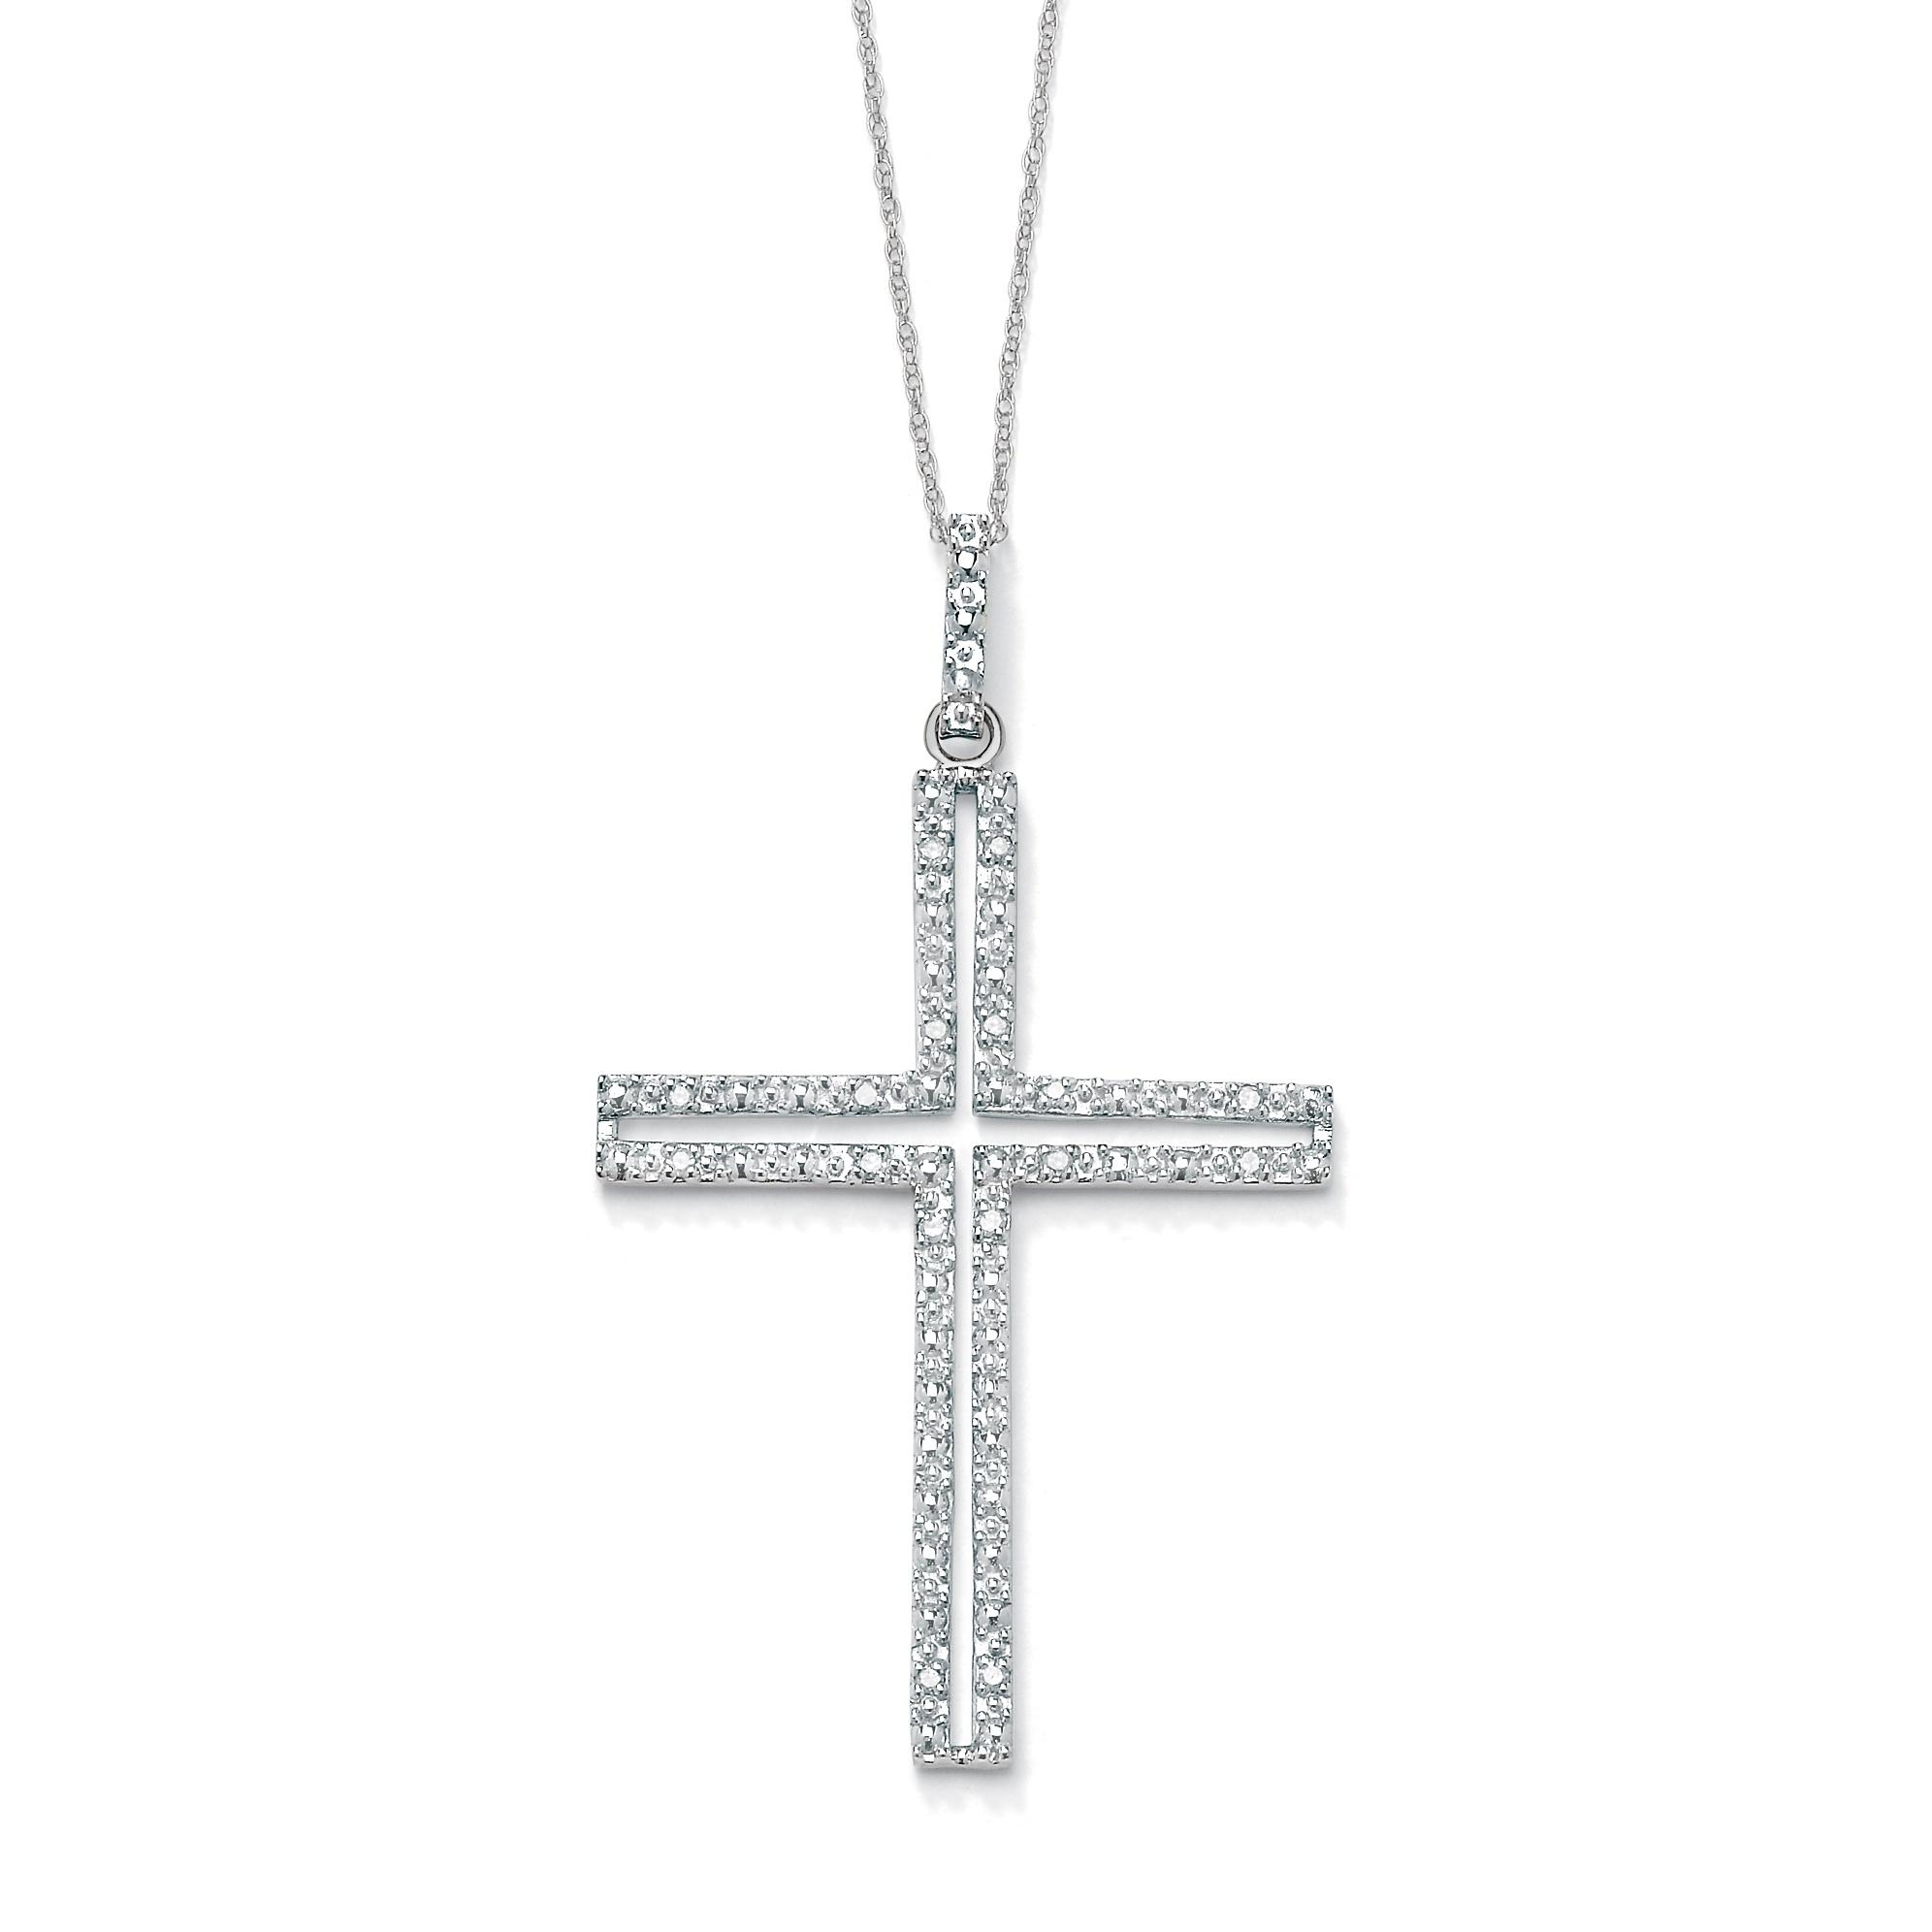 co length tiffany diamond products bubble platinum pendant necklace